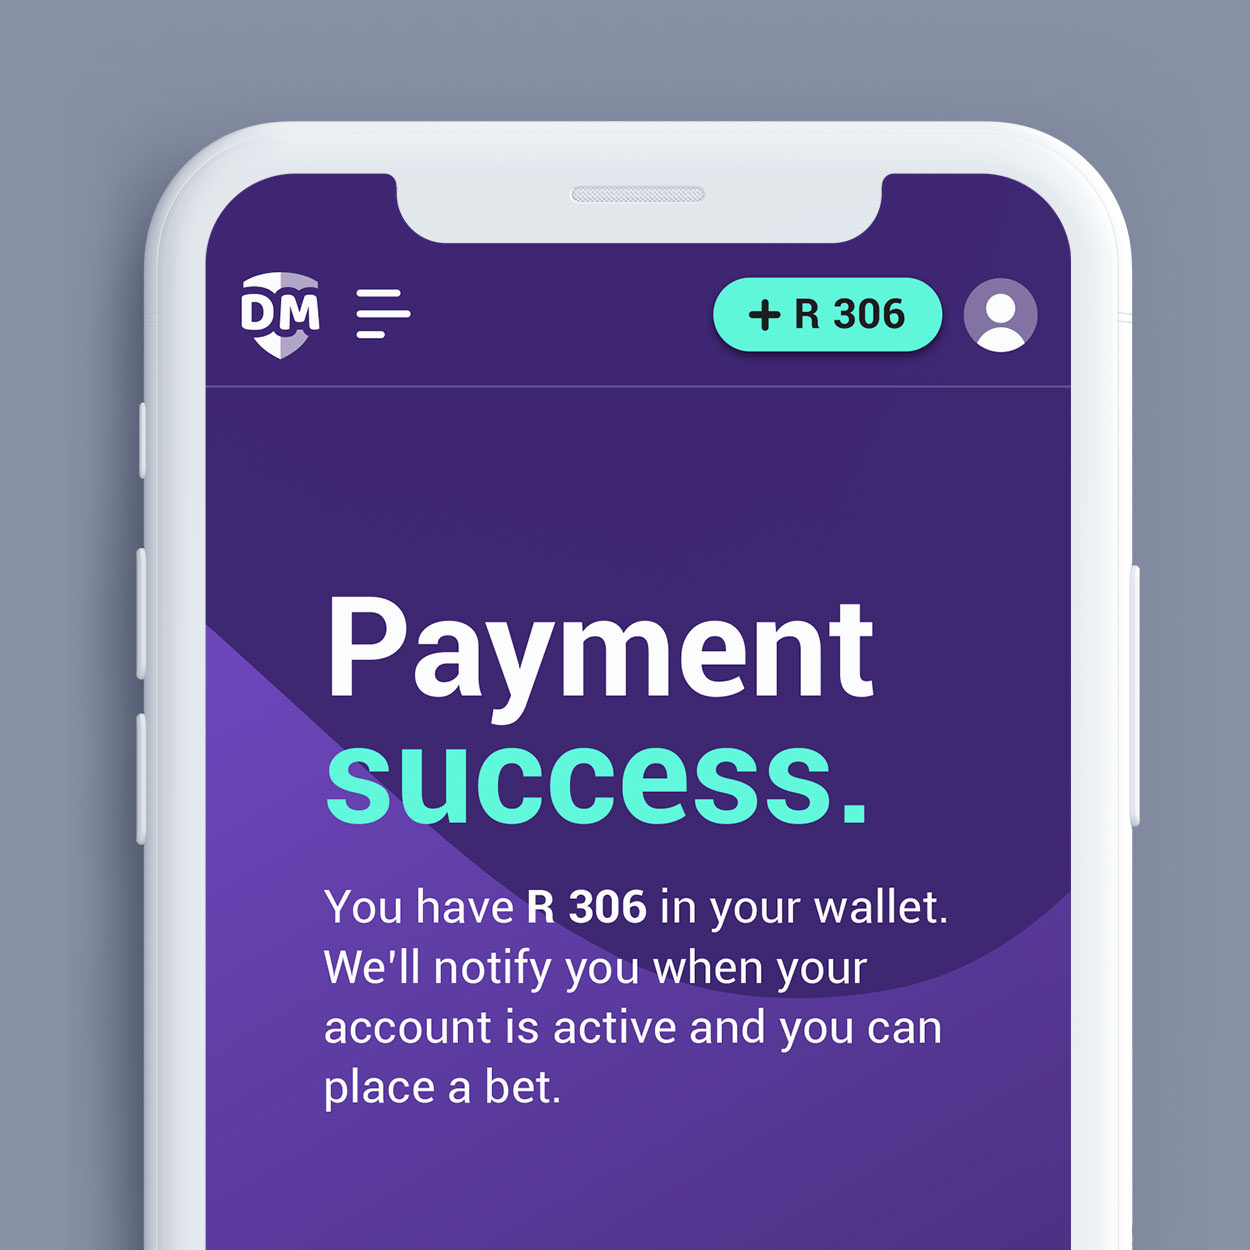 payment-success-page-diskimillions-fixate.jpg